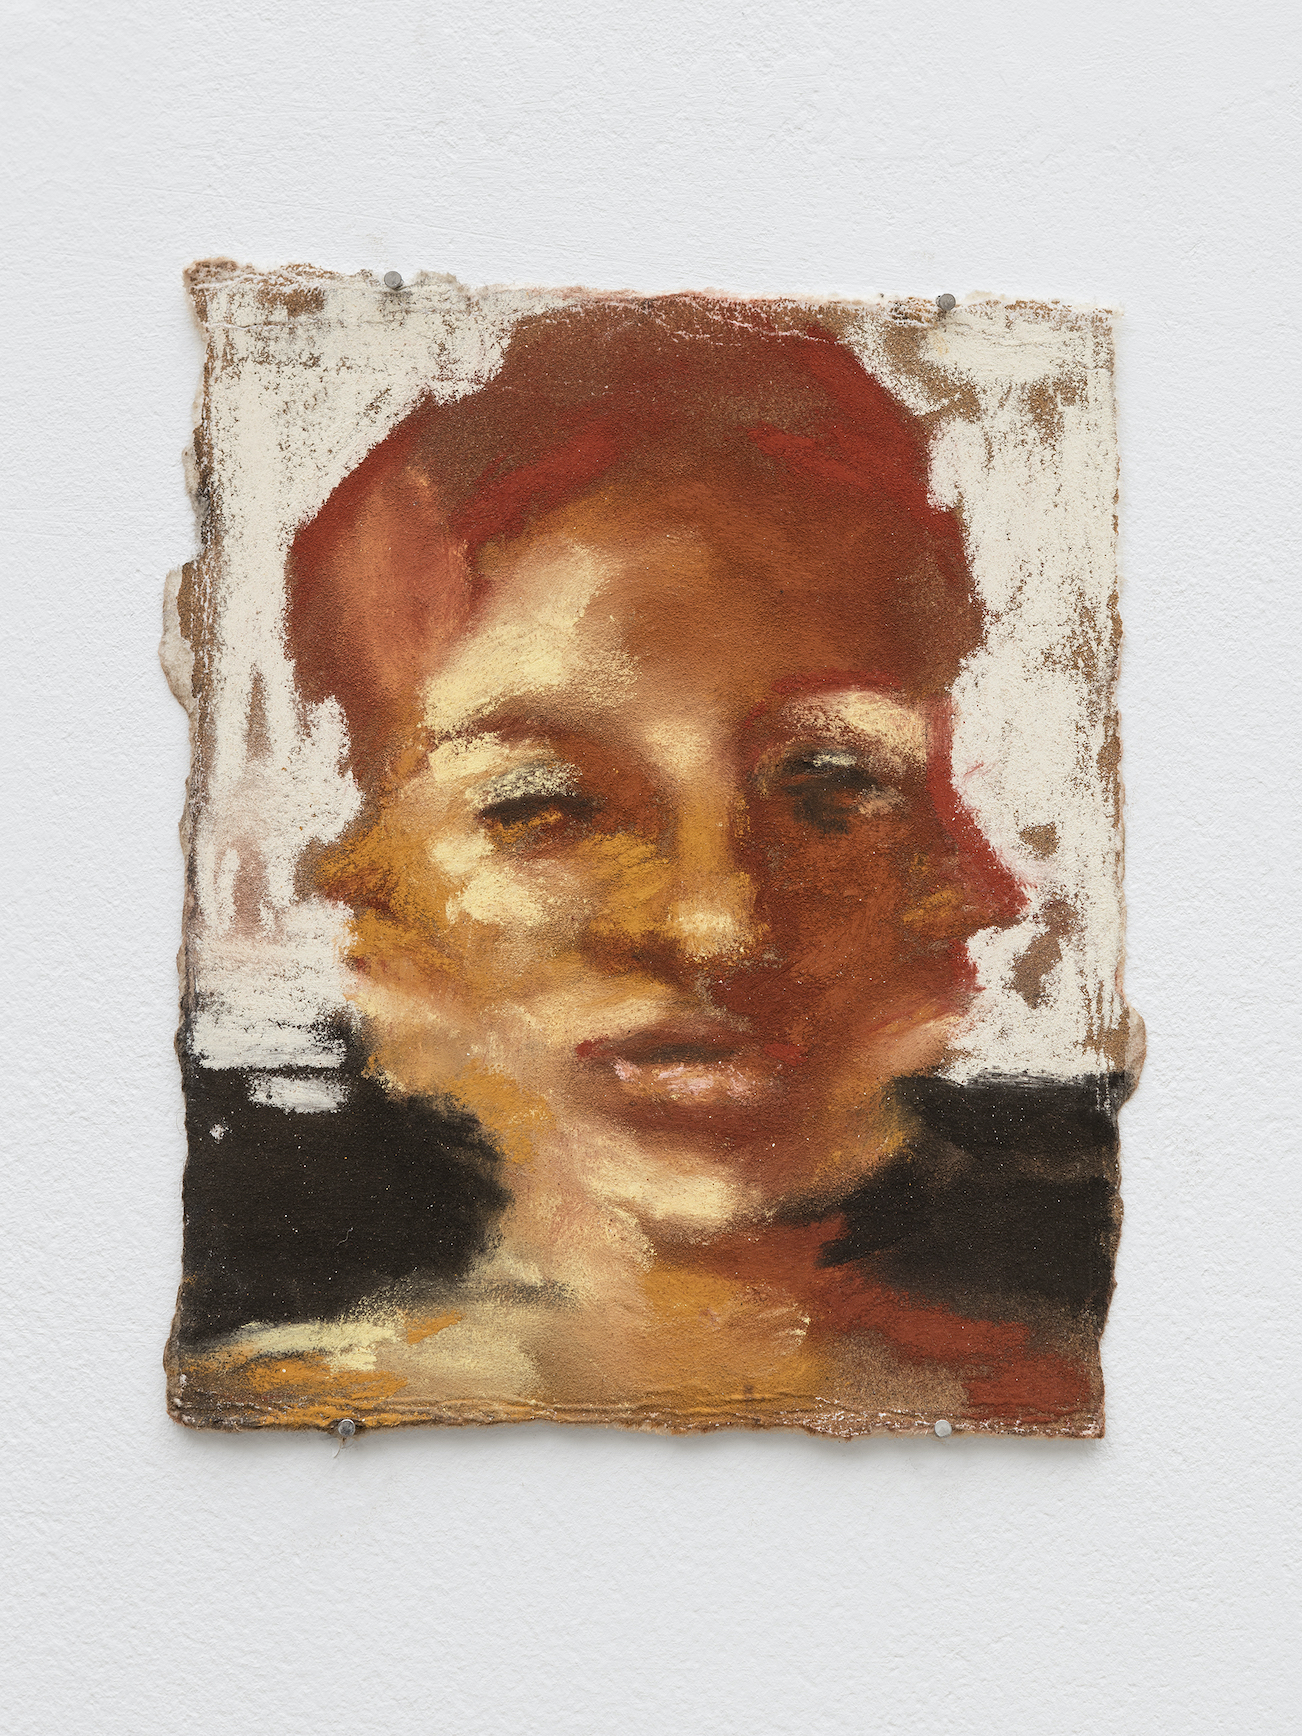 Sophie Ruigrok, Self portrait with three heads, 2020 Soft pastels on card 12 x 15